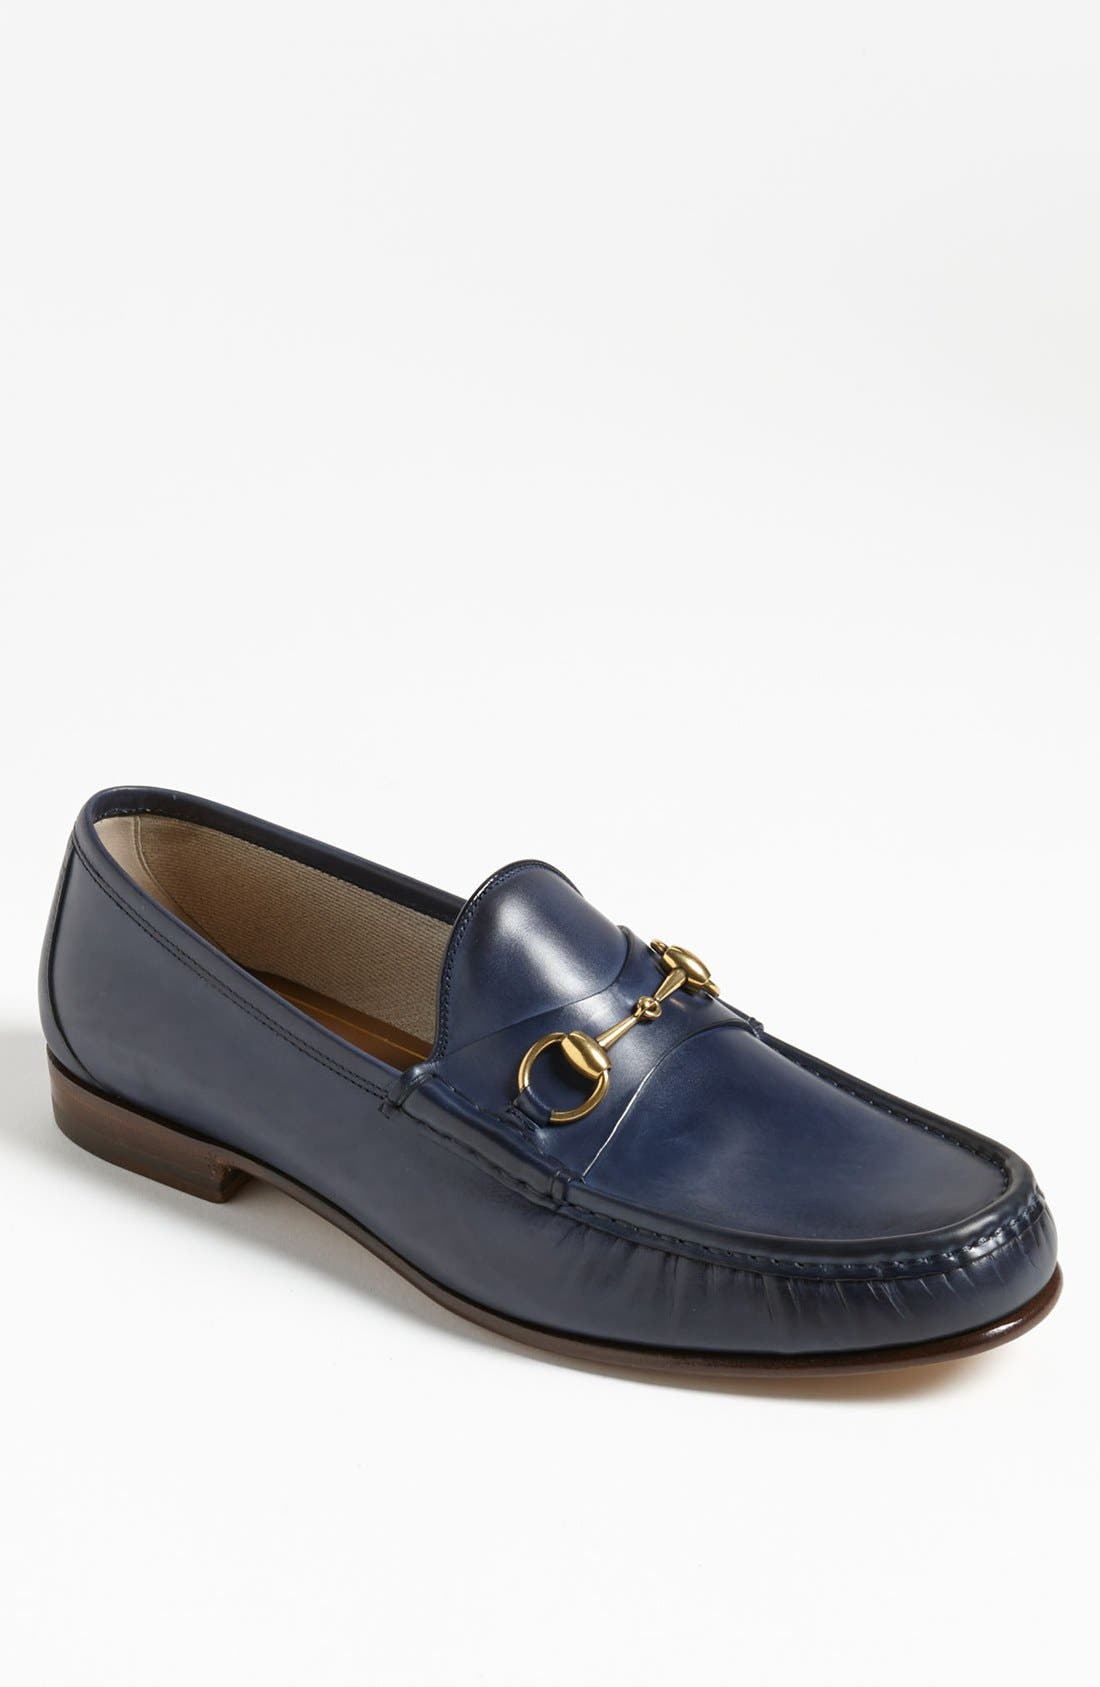 Alternate Image 1 Selected - Gucci 'Roos' Bit Loafer